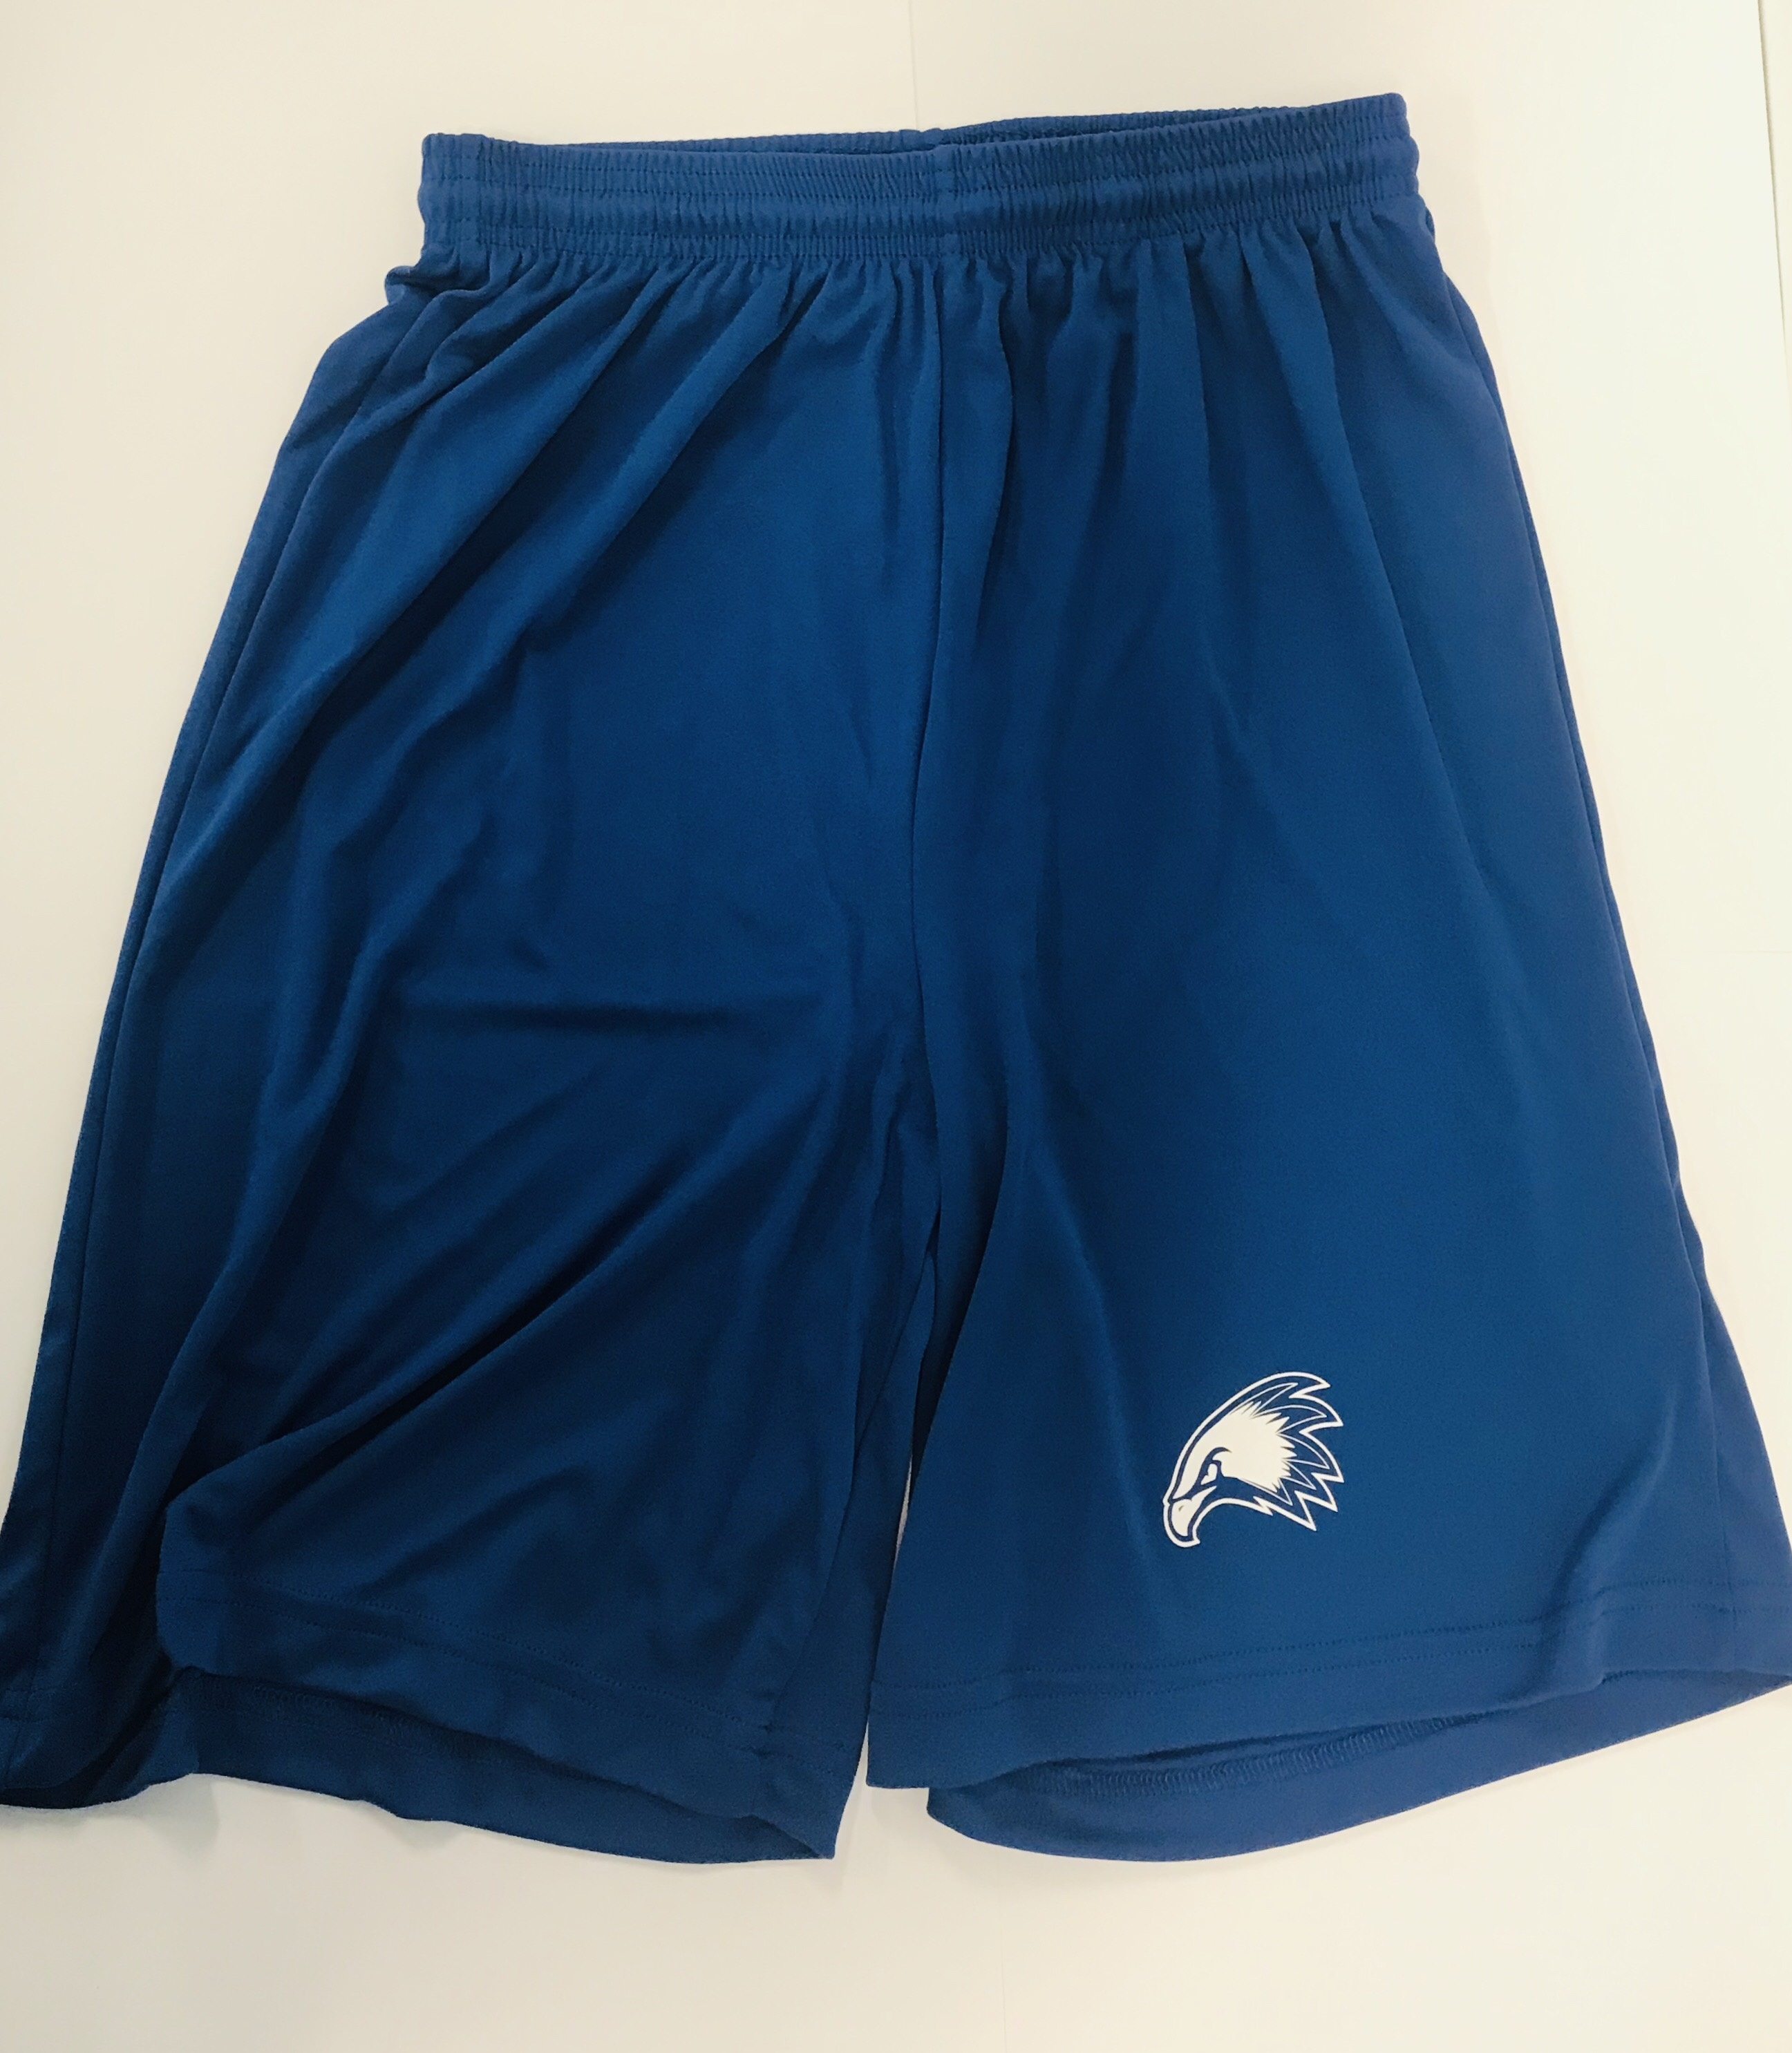 Golden Eagle Gym Shorts